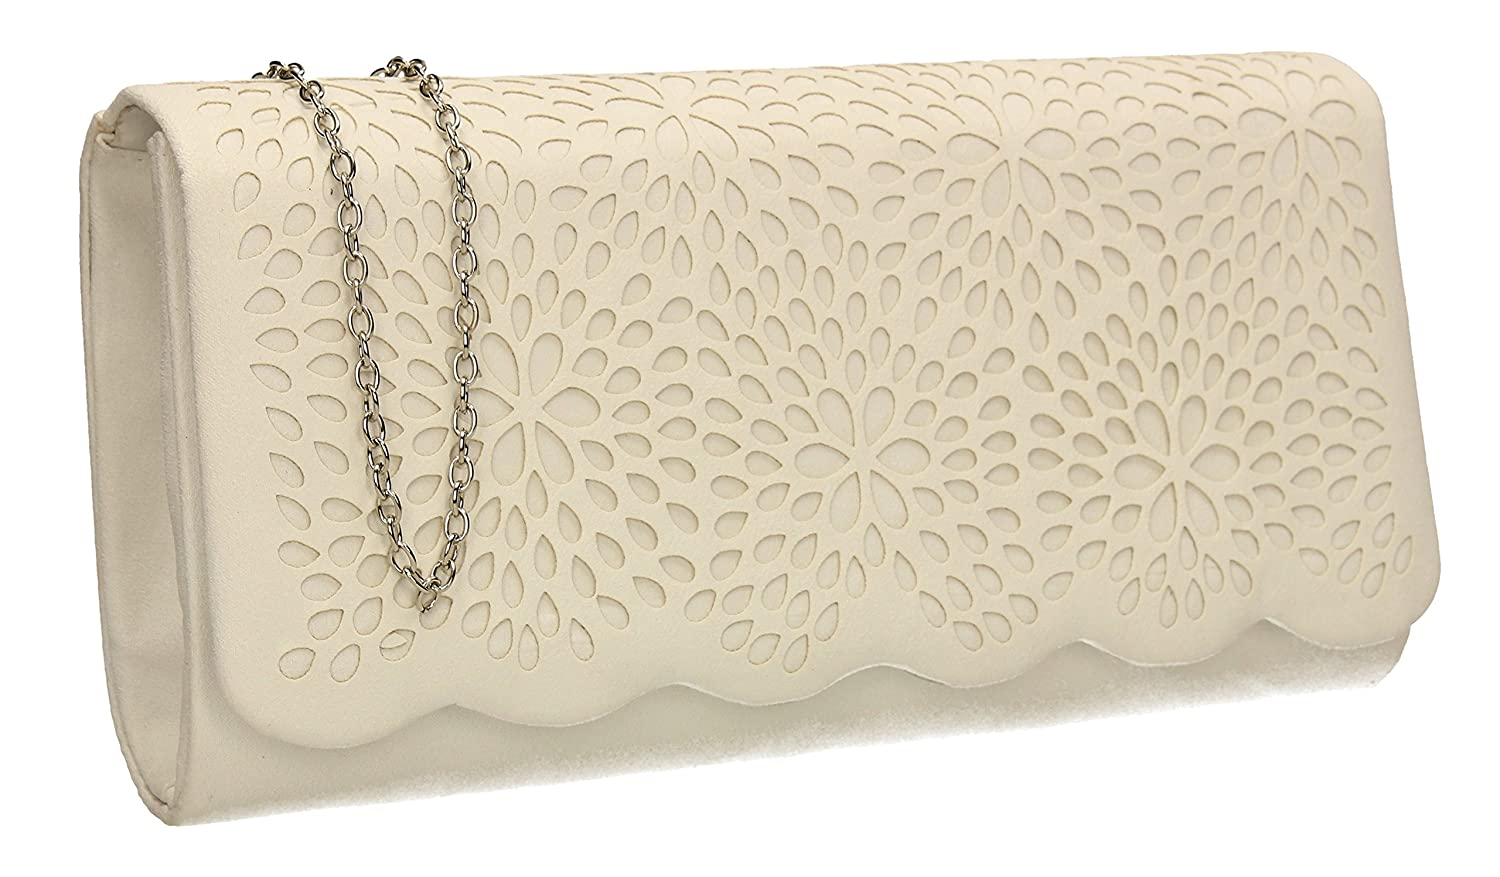 a0f72ff6f9 Lovely suede leather flapover clutch bag with beautiful micro petal laser  cut out detail. Comes with button closure. Perfect for understated classic  style.